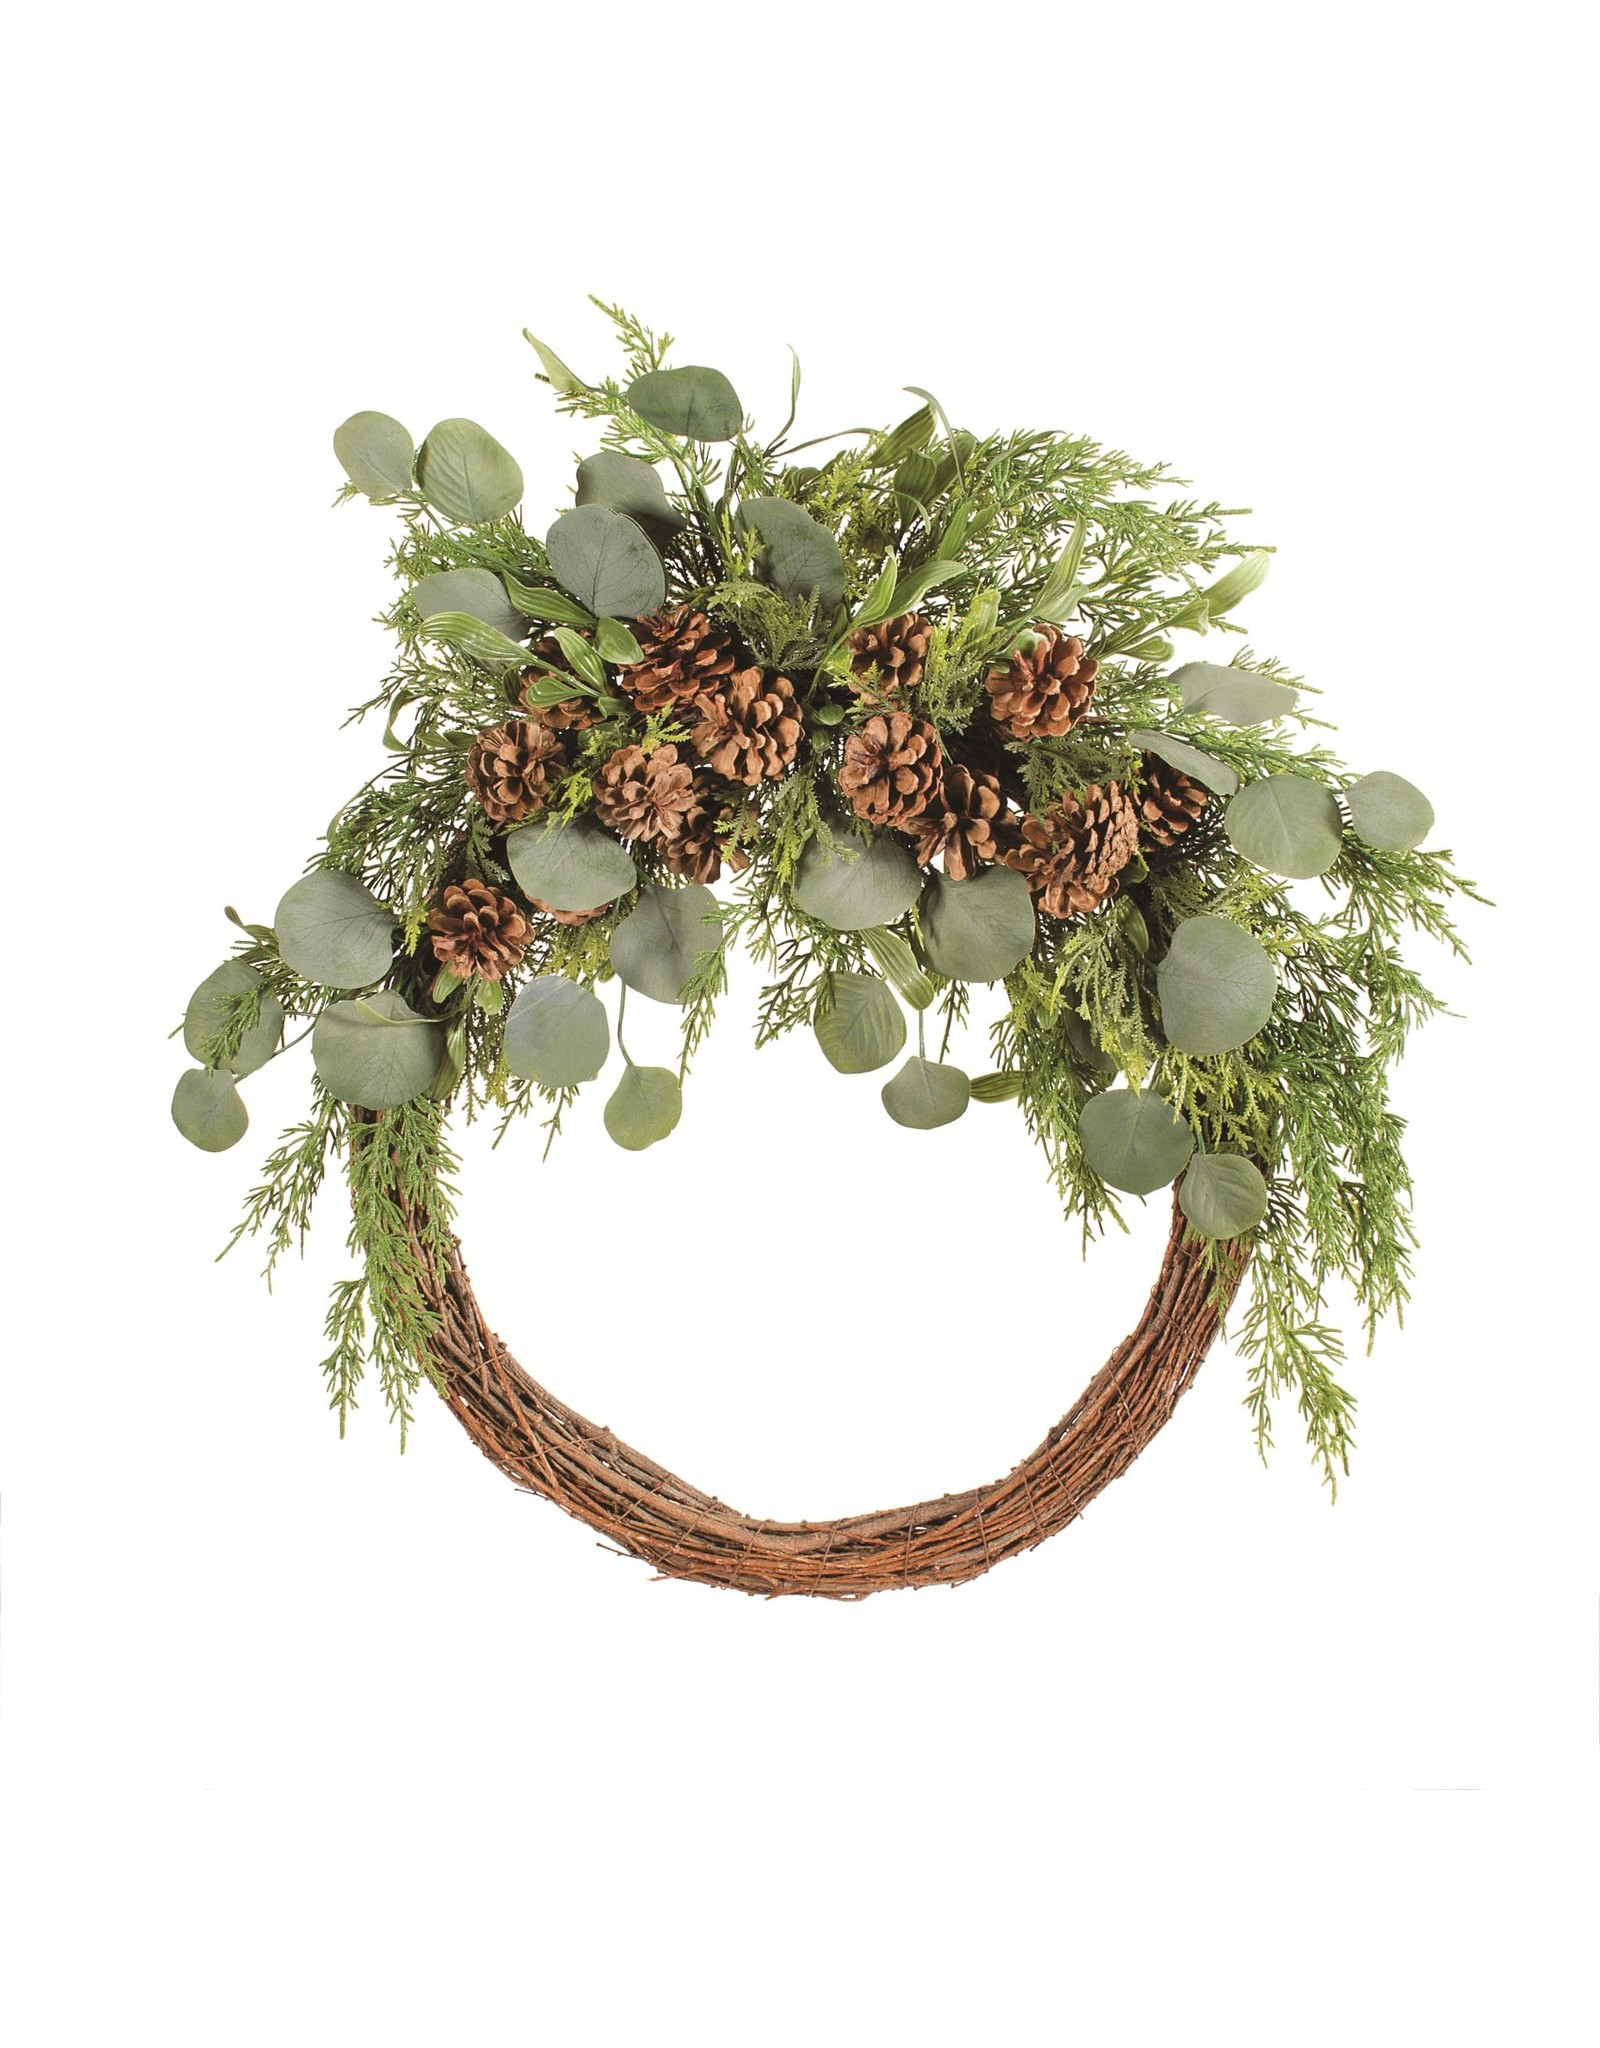 Vine Wreath with Evergreens and Cones